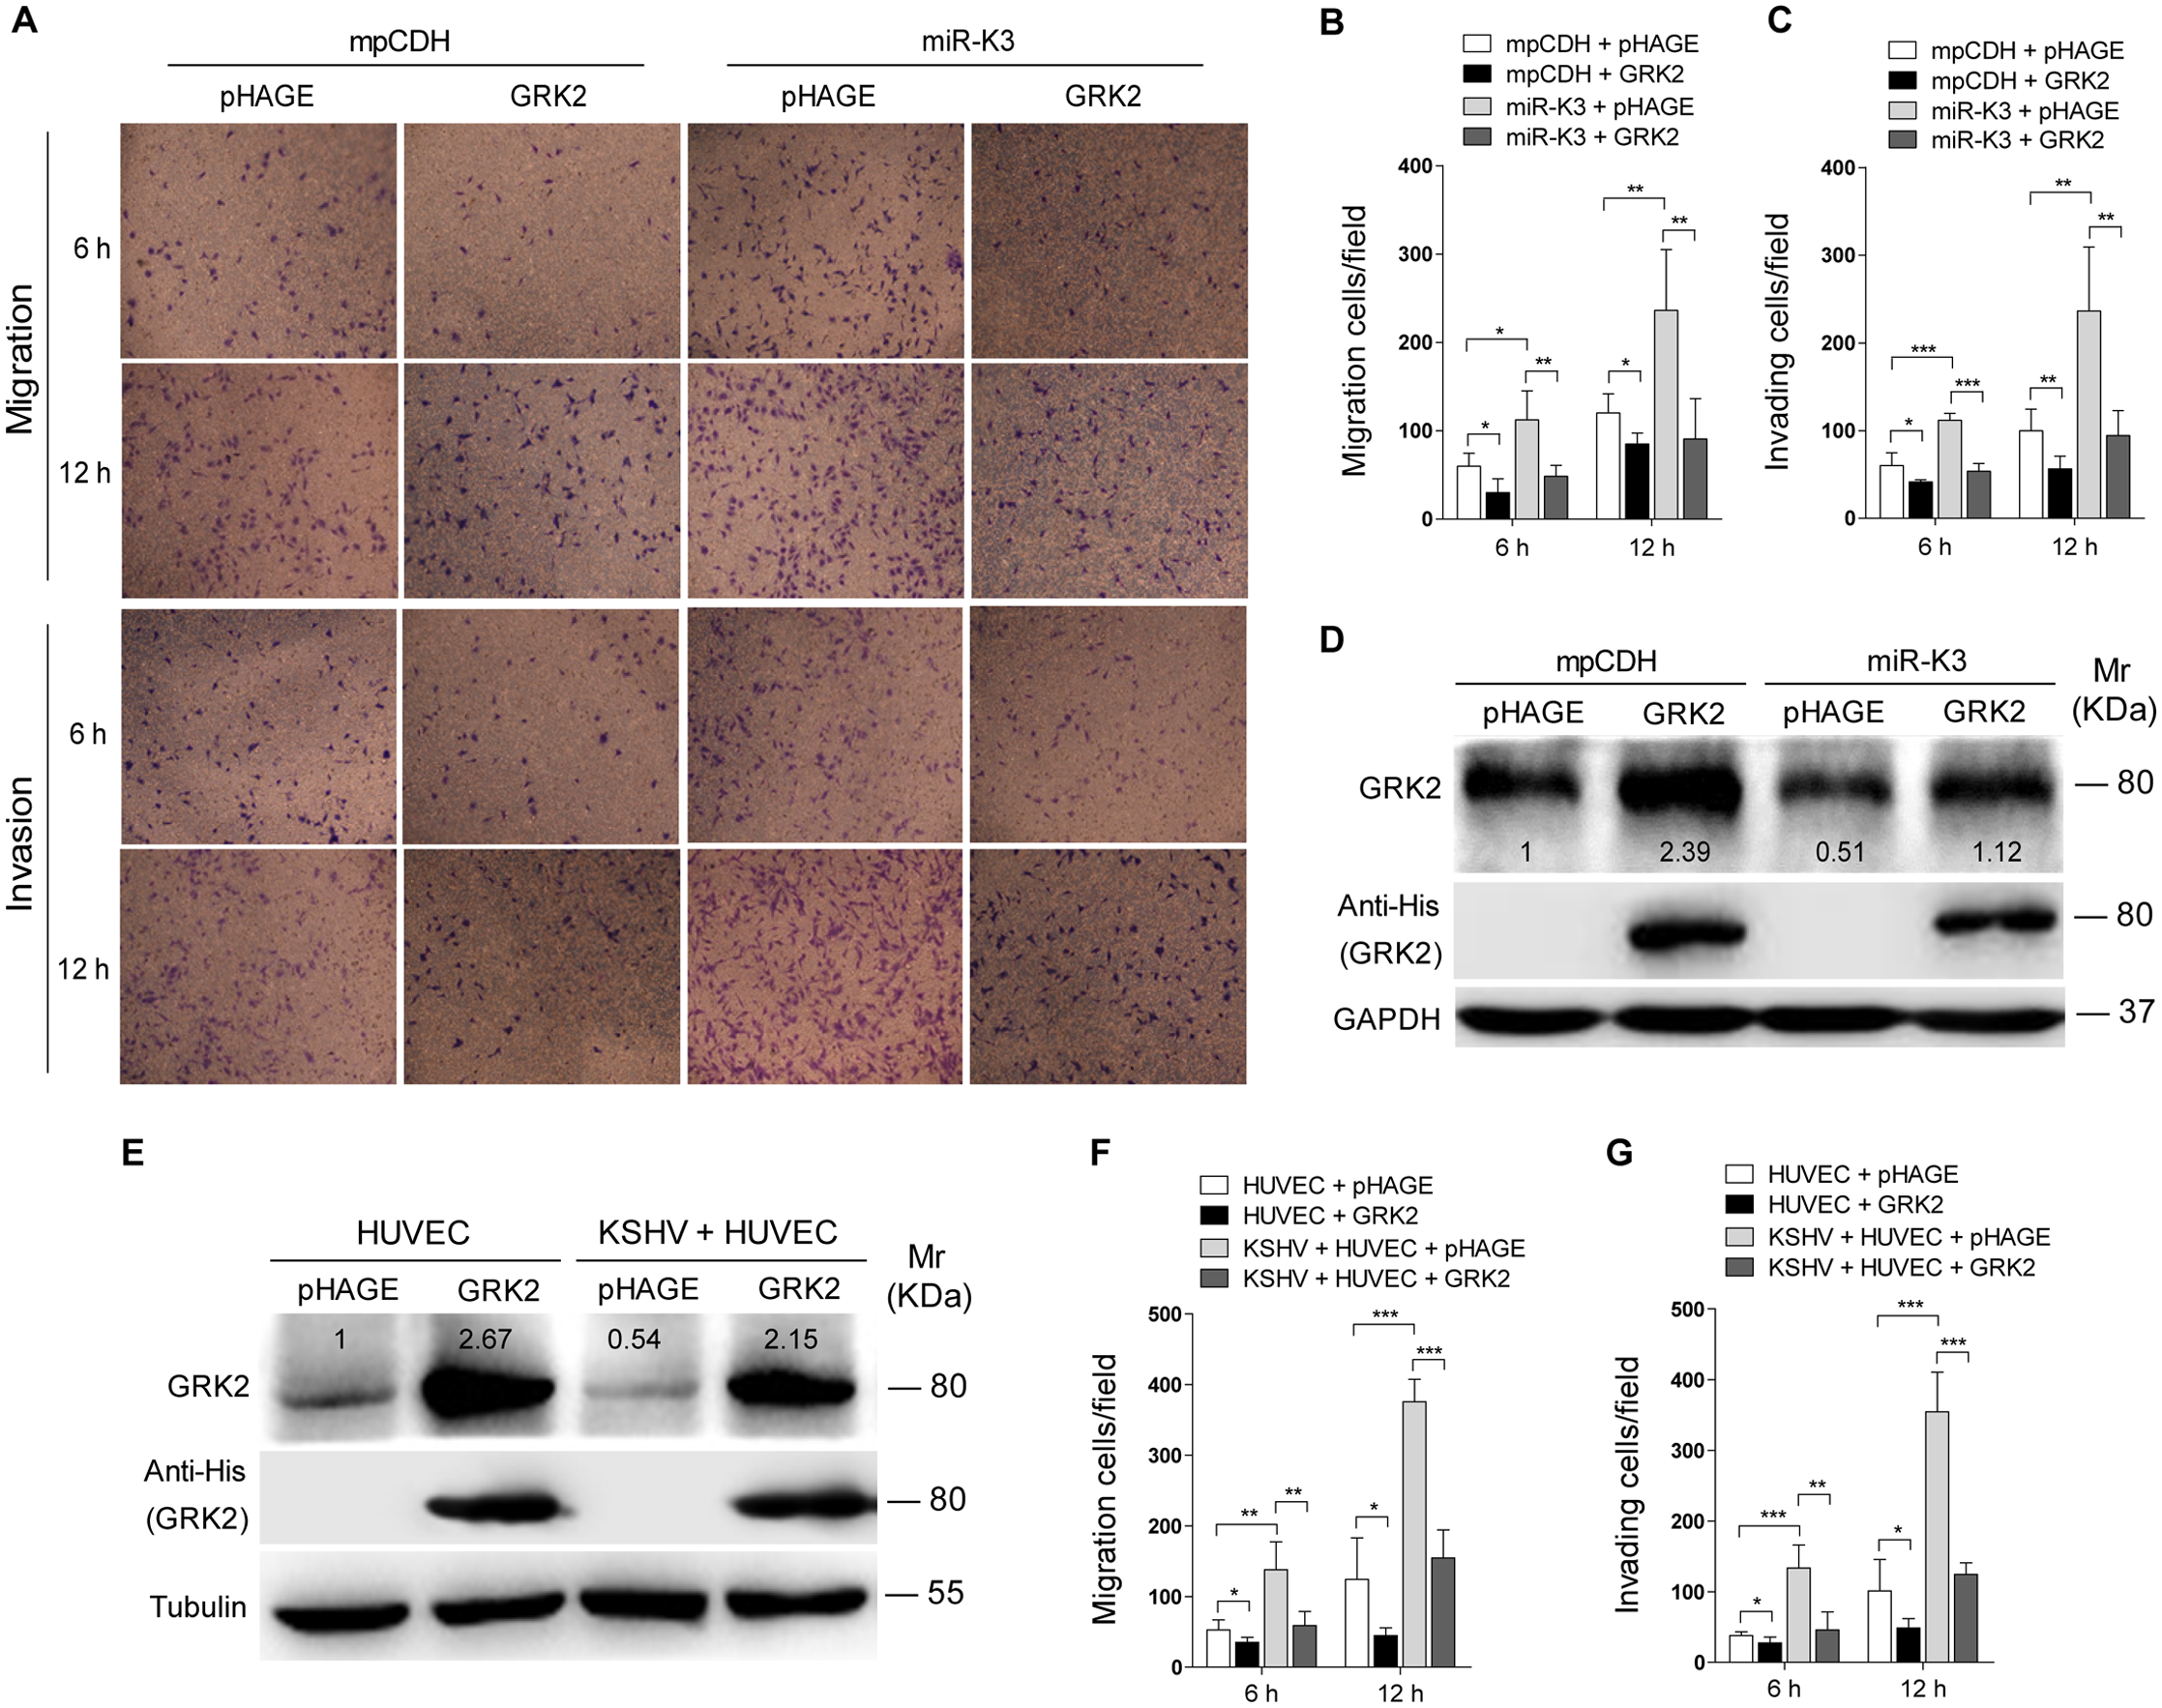 Ectopic expression of GRK2 inhibits miR-K3-induced endothelial cell migration and invasion.